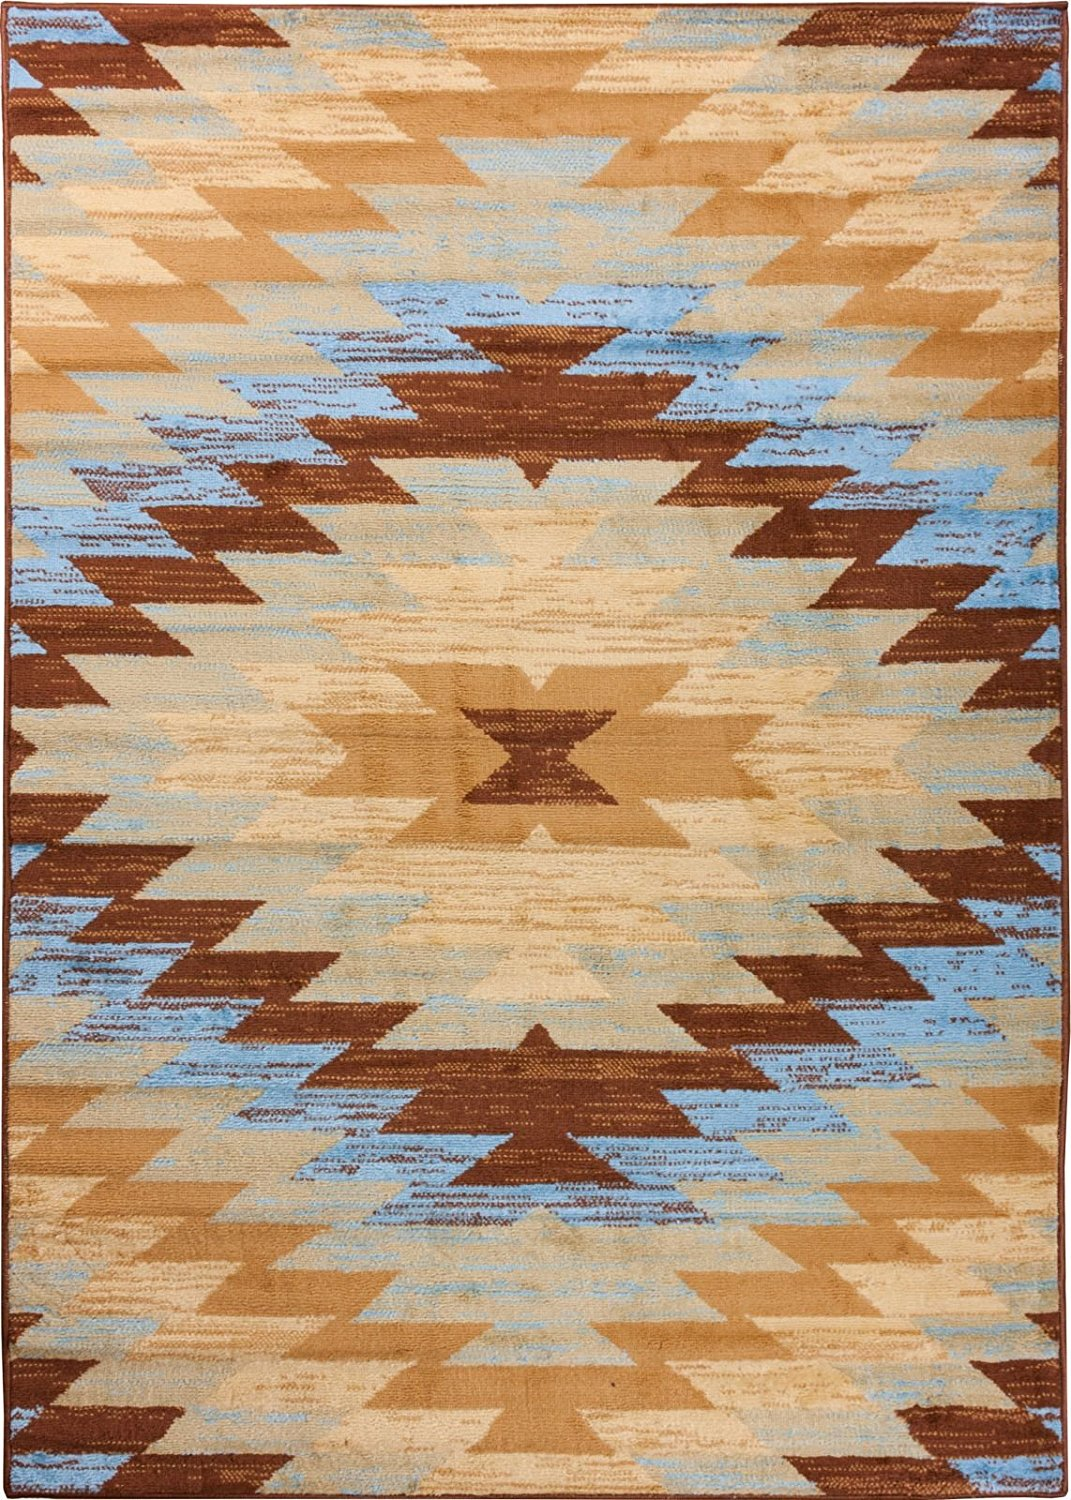 Well Woven Miami Alamo Southwestern Blue Southwest Area Rug 8'2'' X 9'10""